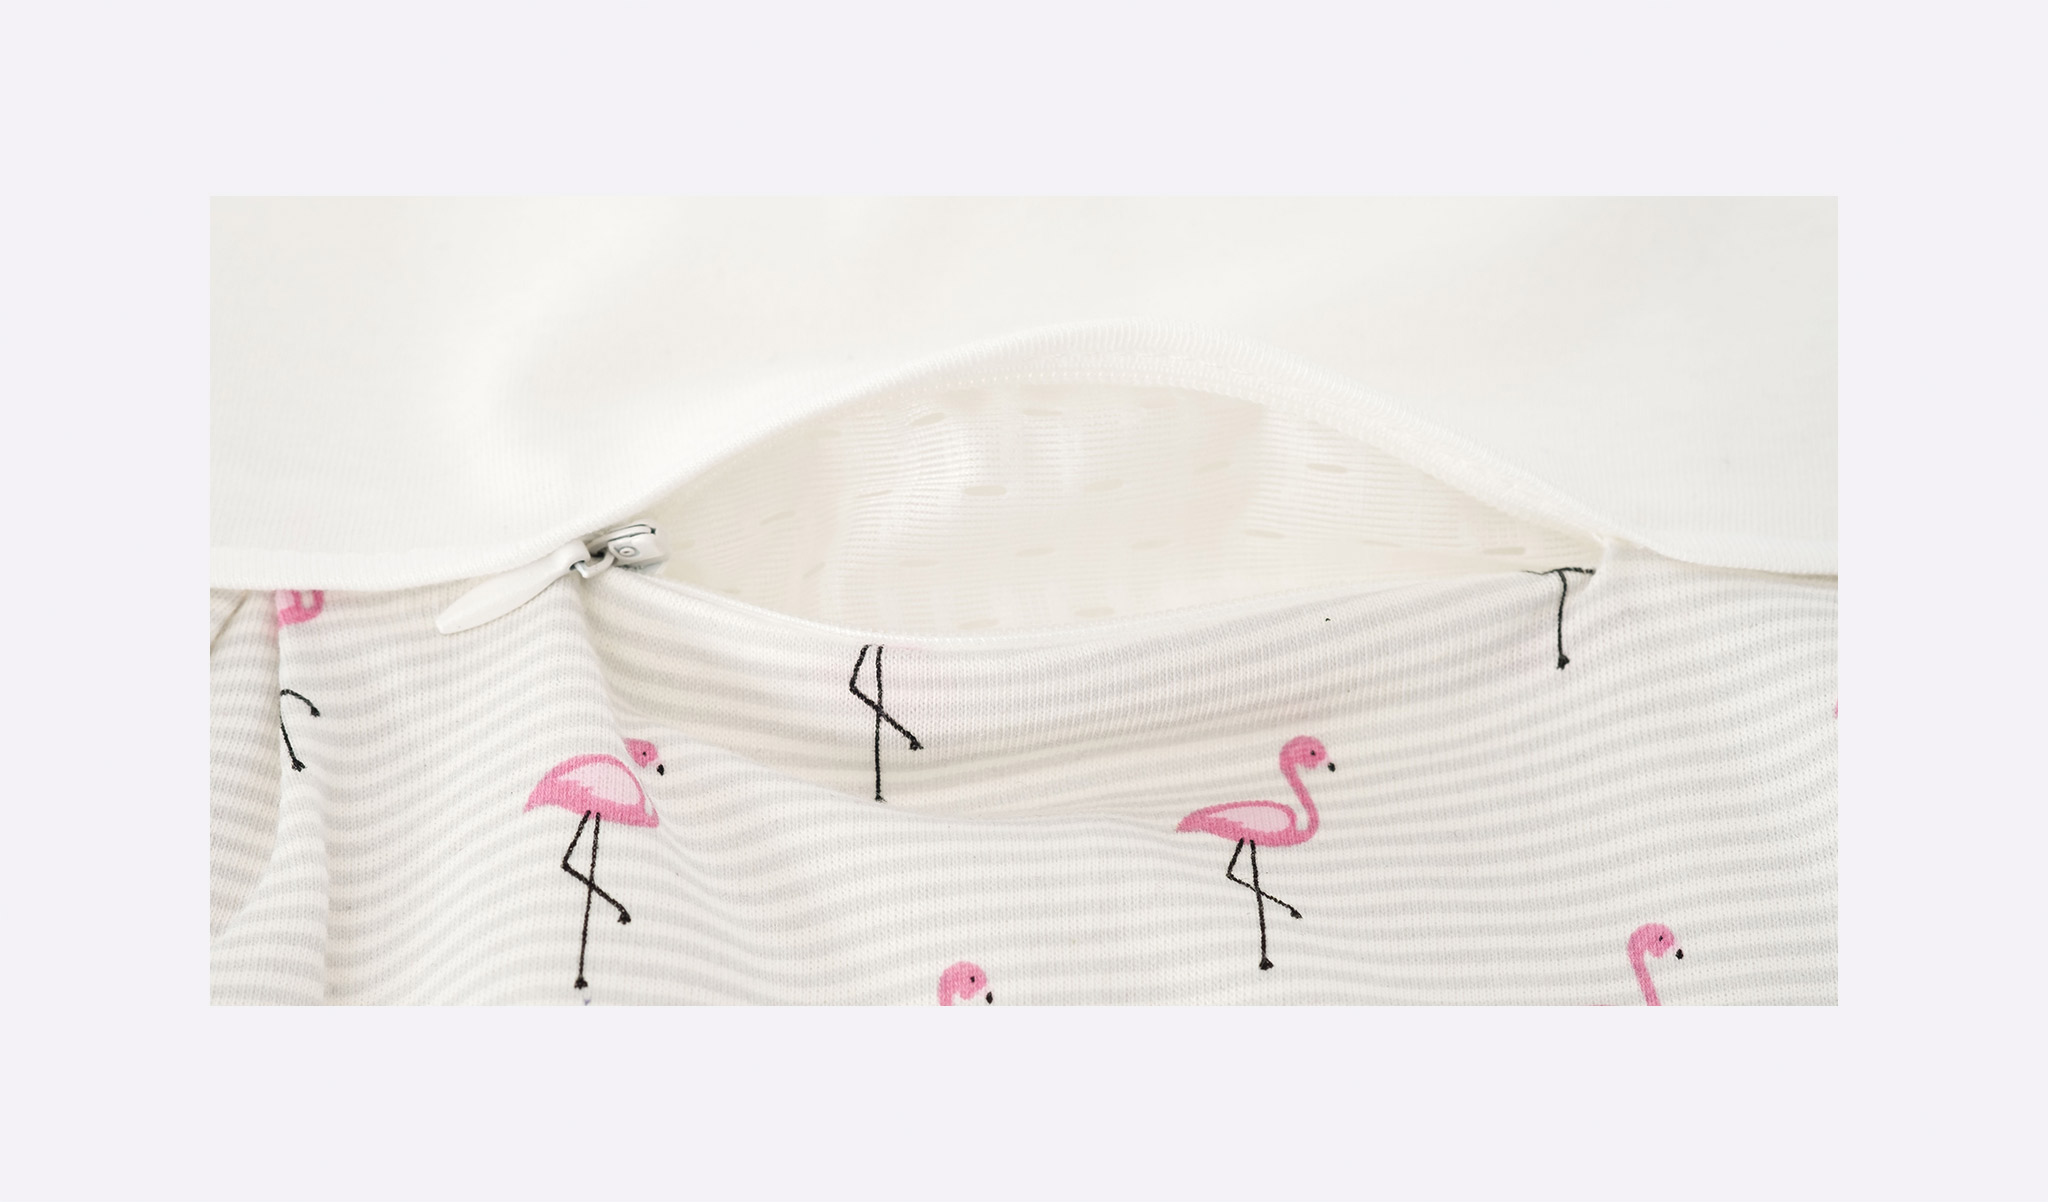 S0102555 - Schlafsack - Set Flamingo